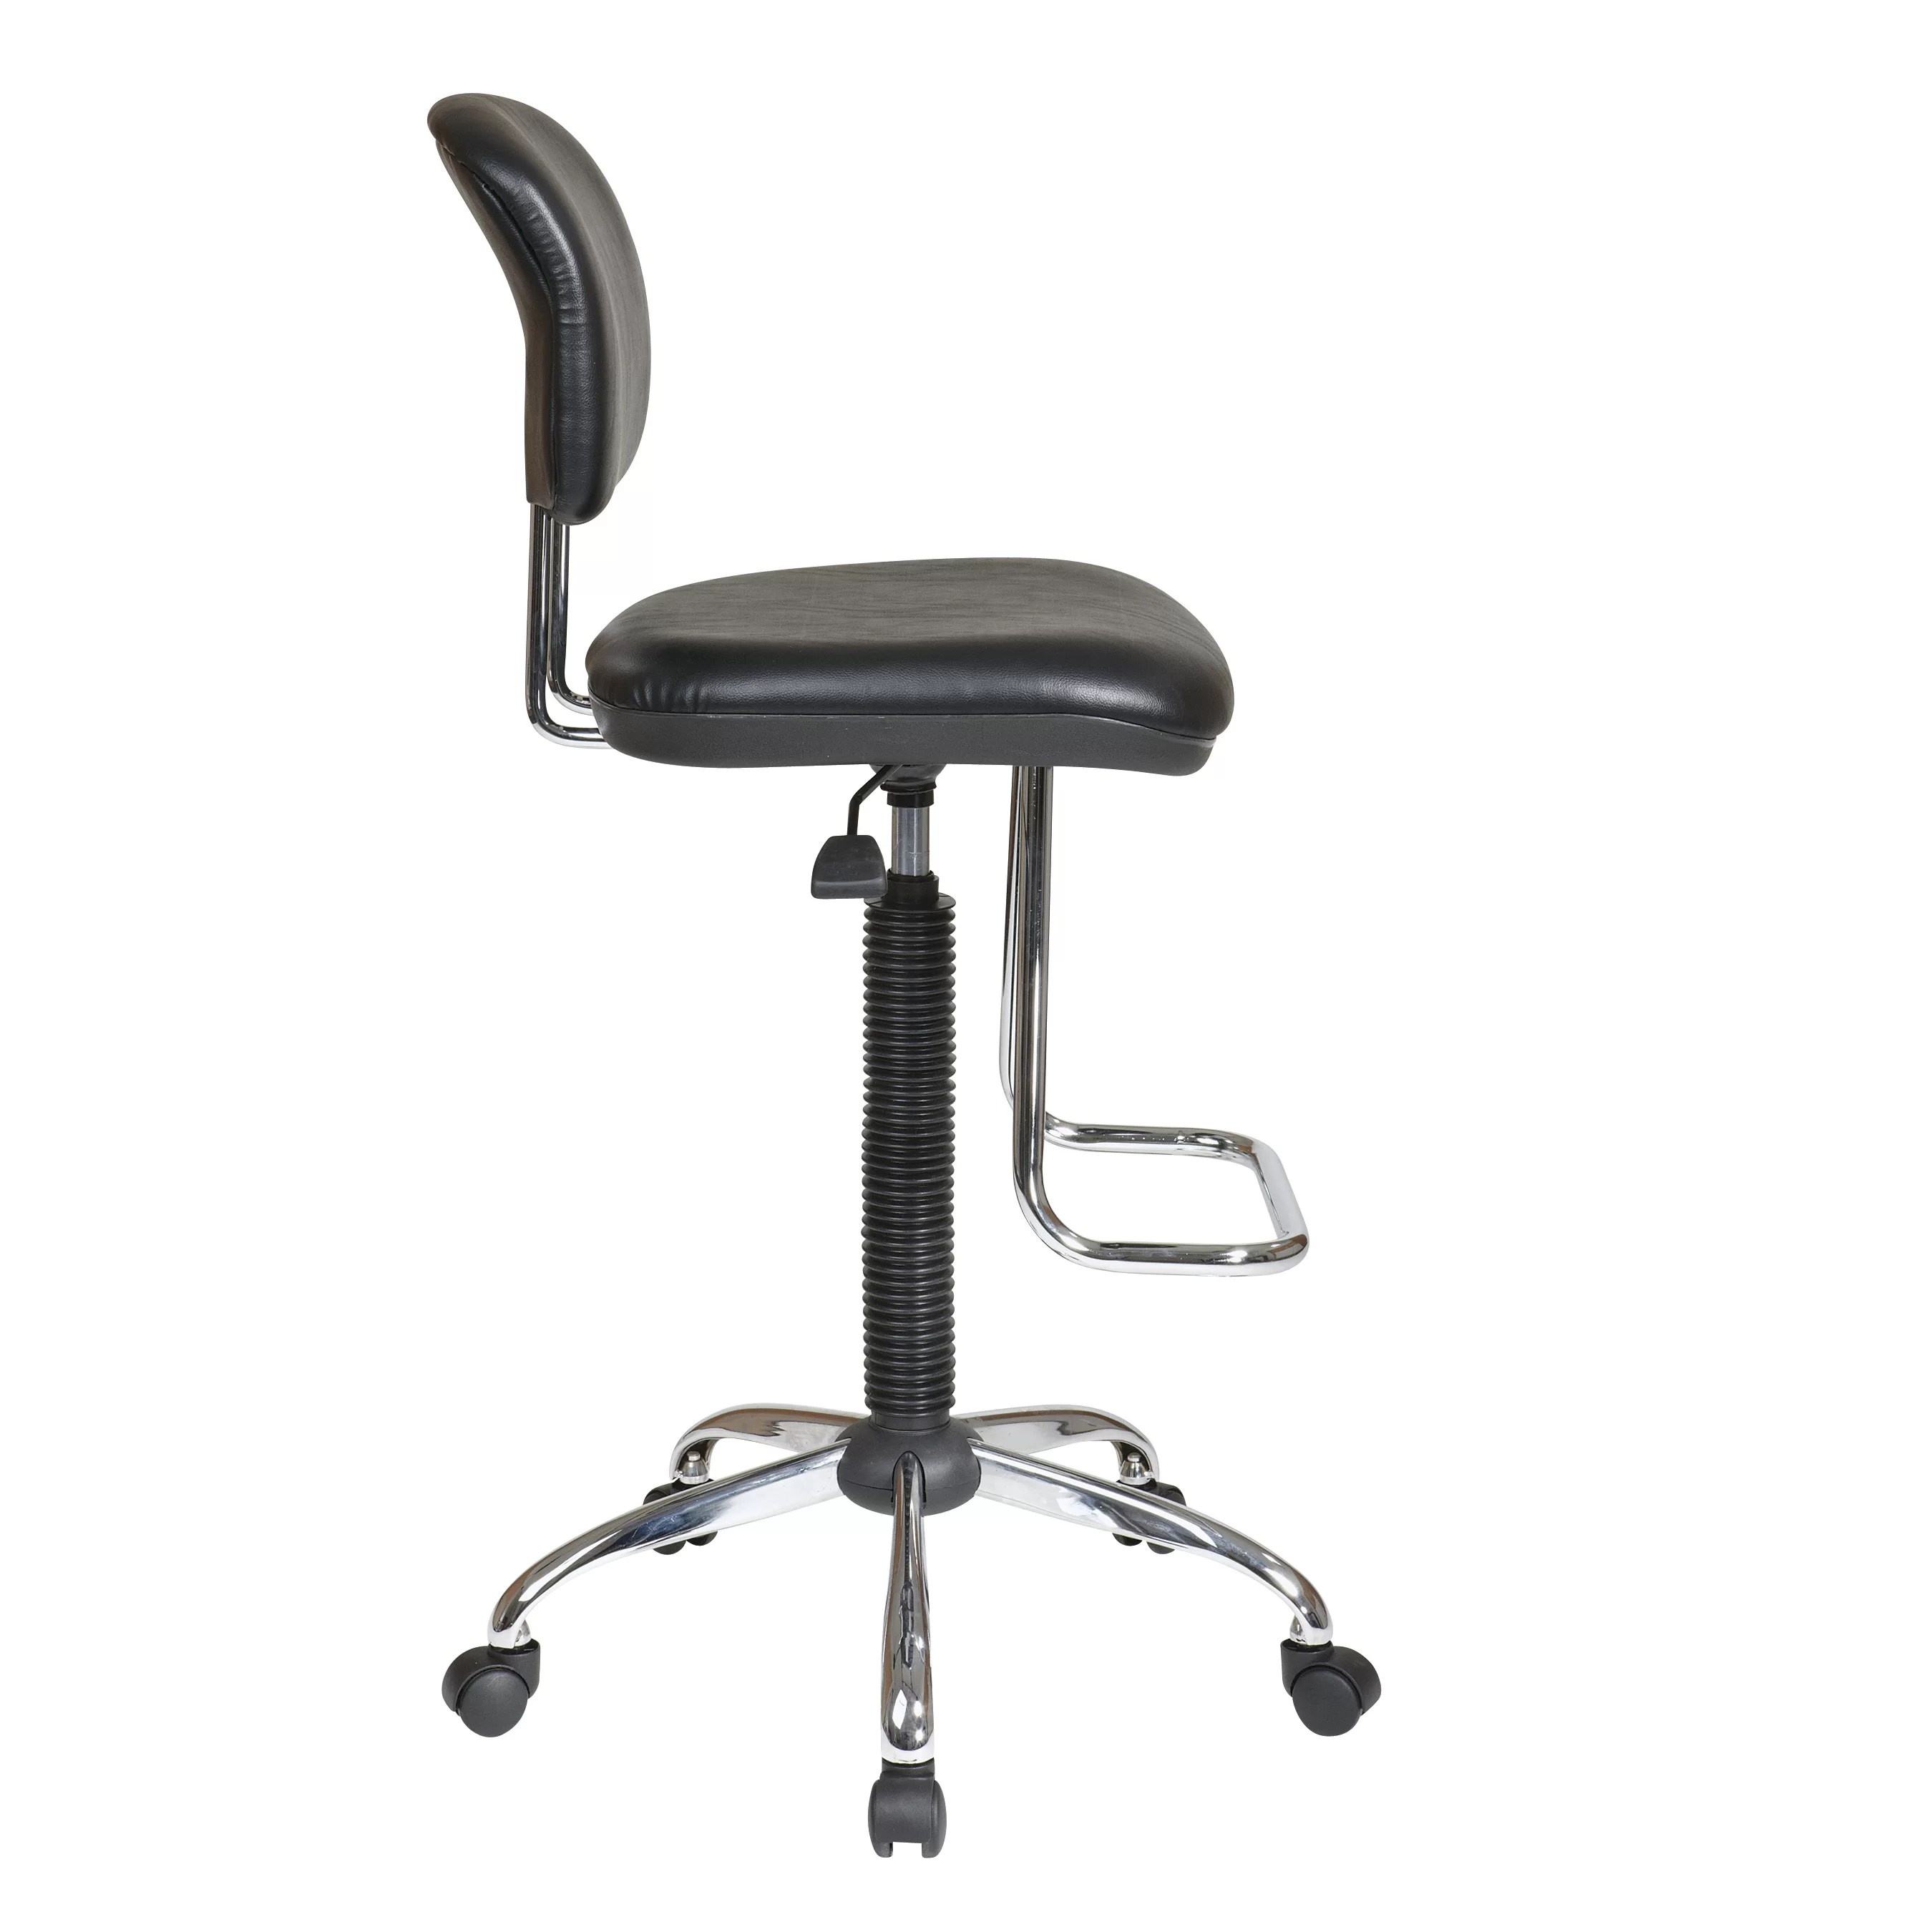 Adjustable Drafting Chair Office Star Height Adjustable Drafting Chair With Footrest